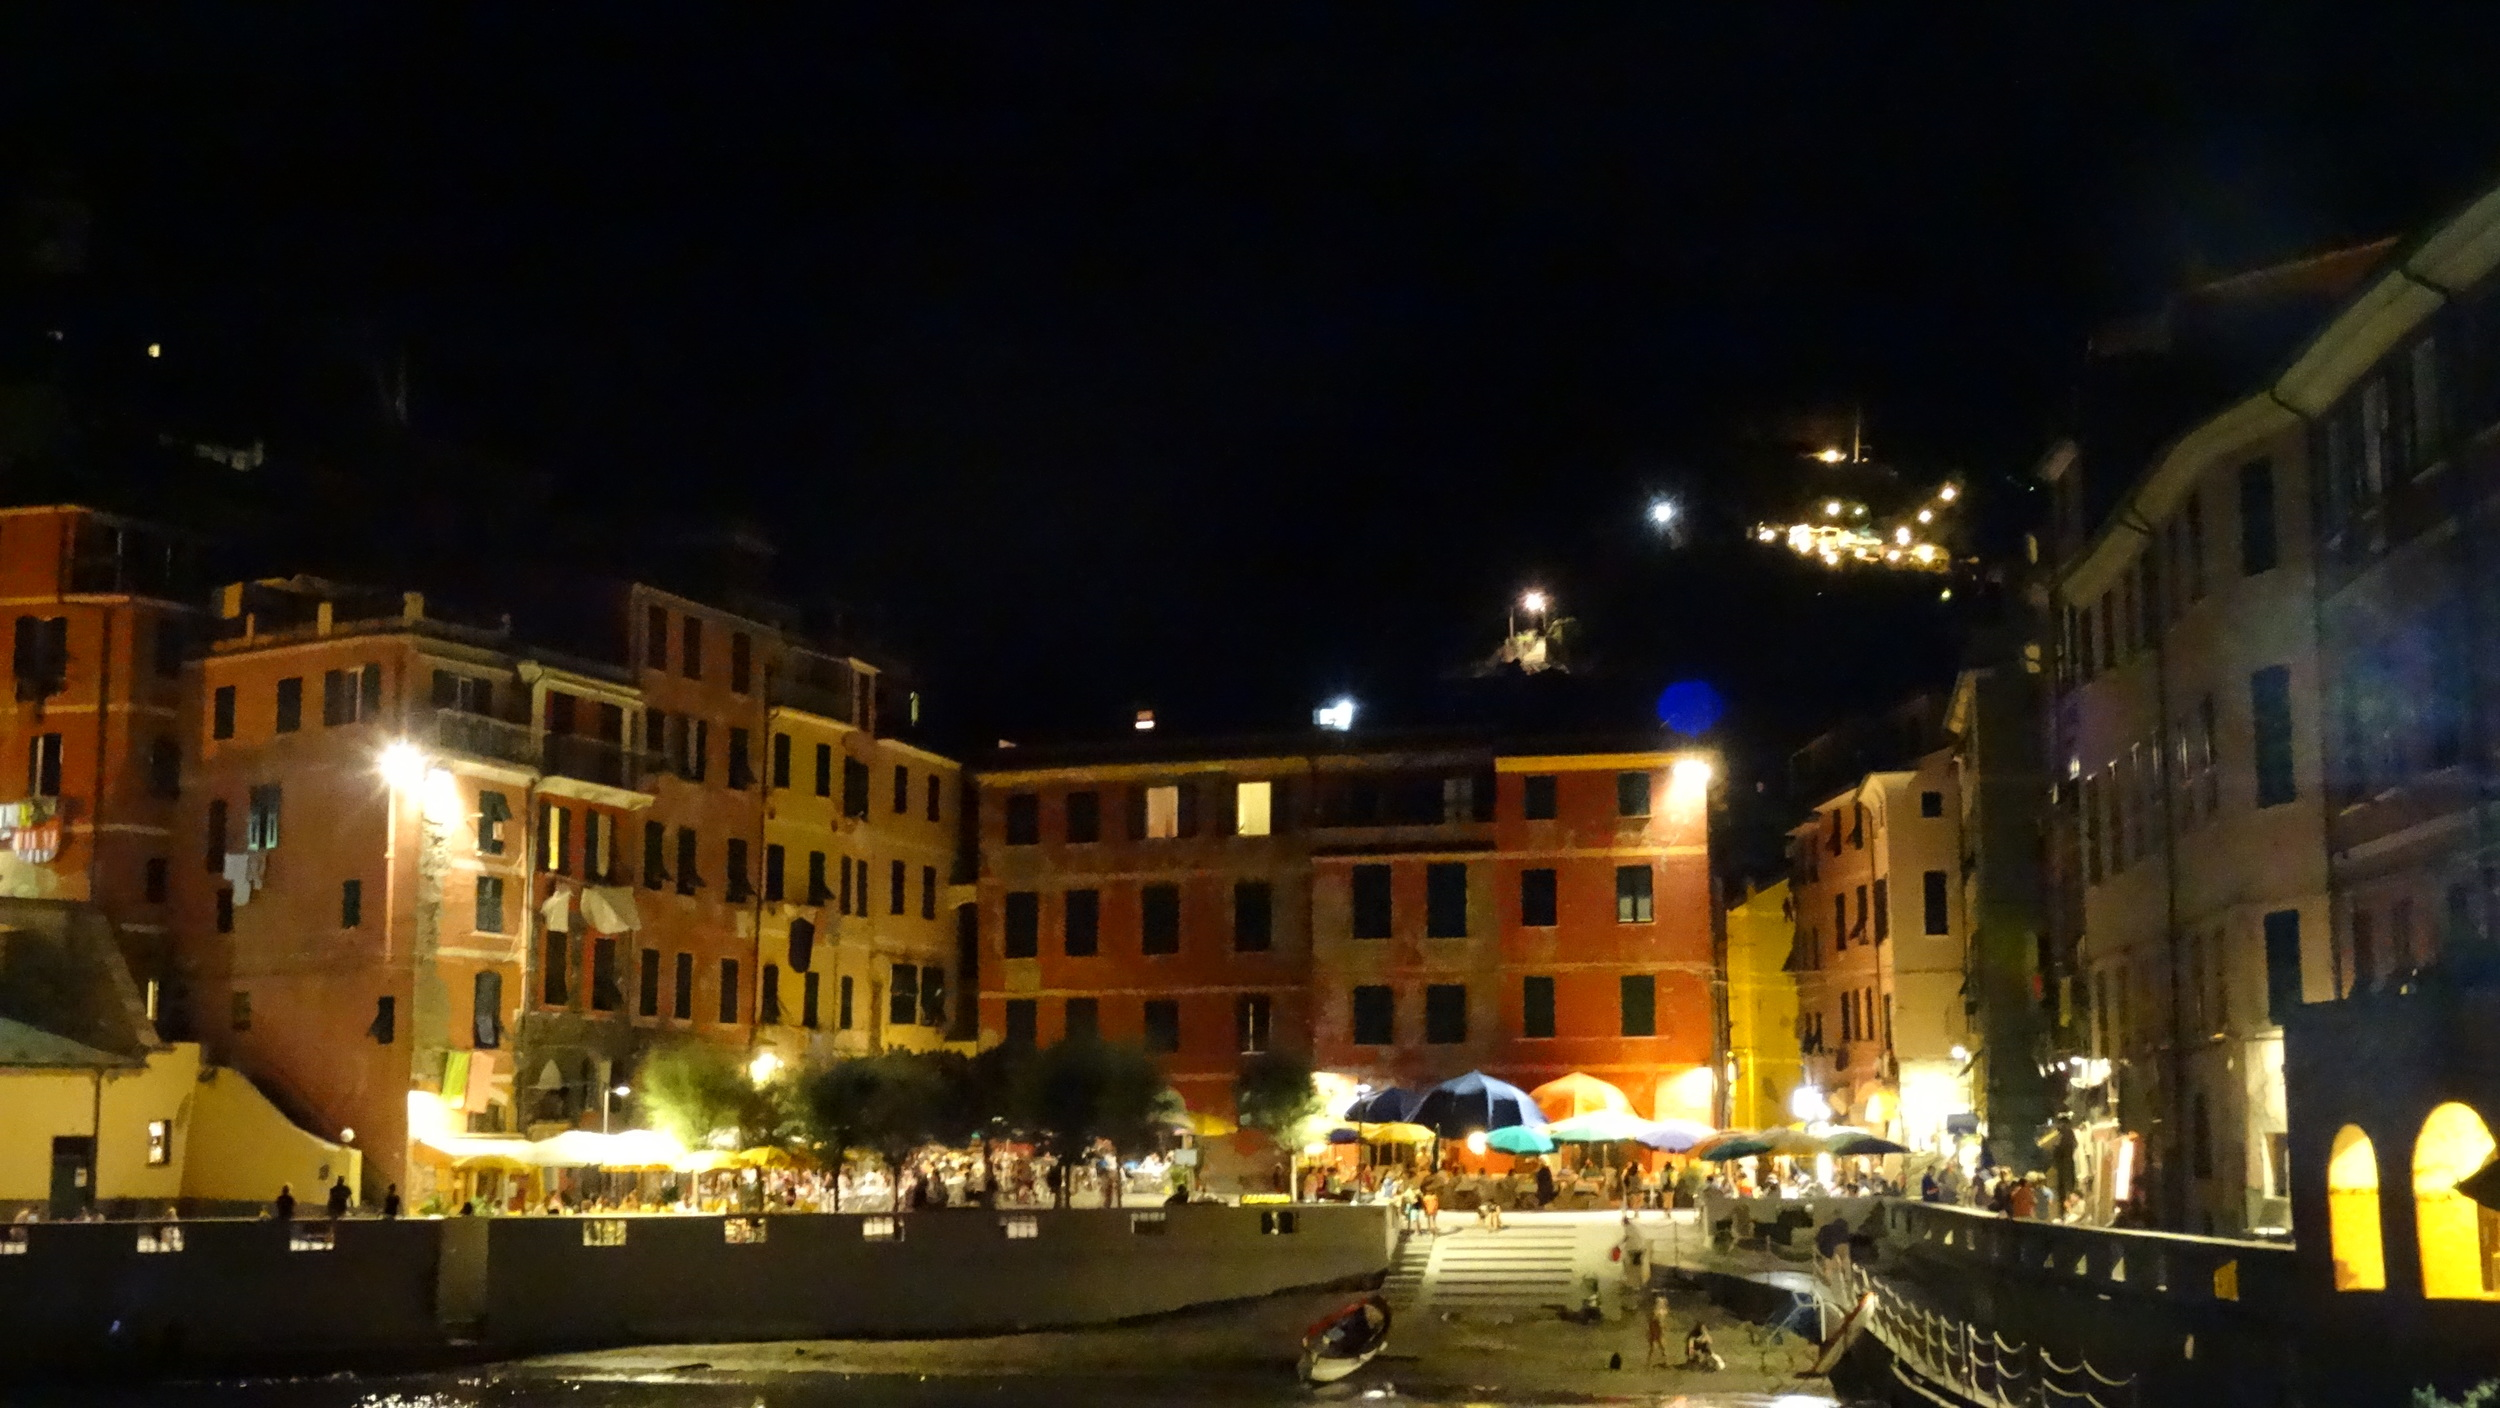 Vernazza at night. This is one of the 5 (cinque) villages in Cinque Terre and where Jordan and I stayed.